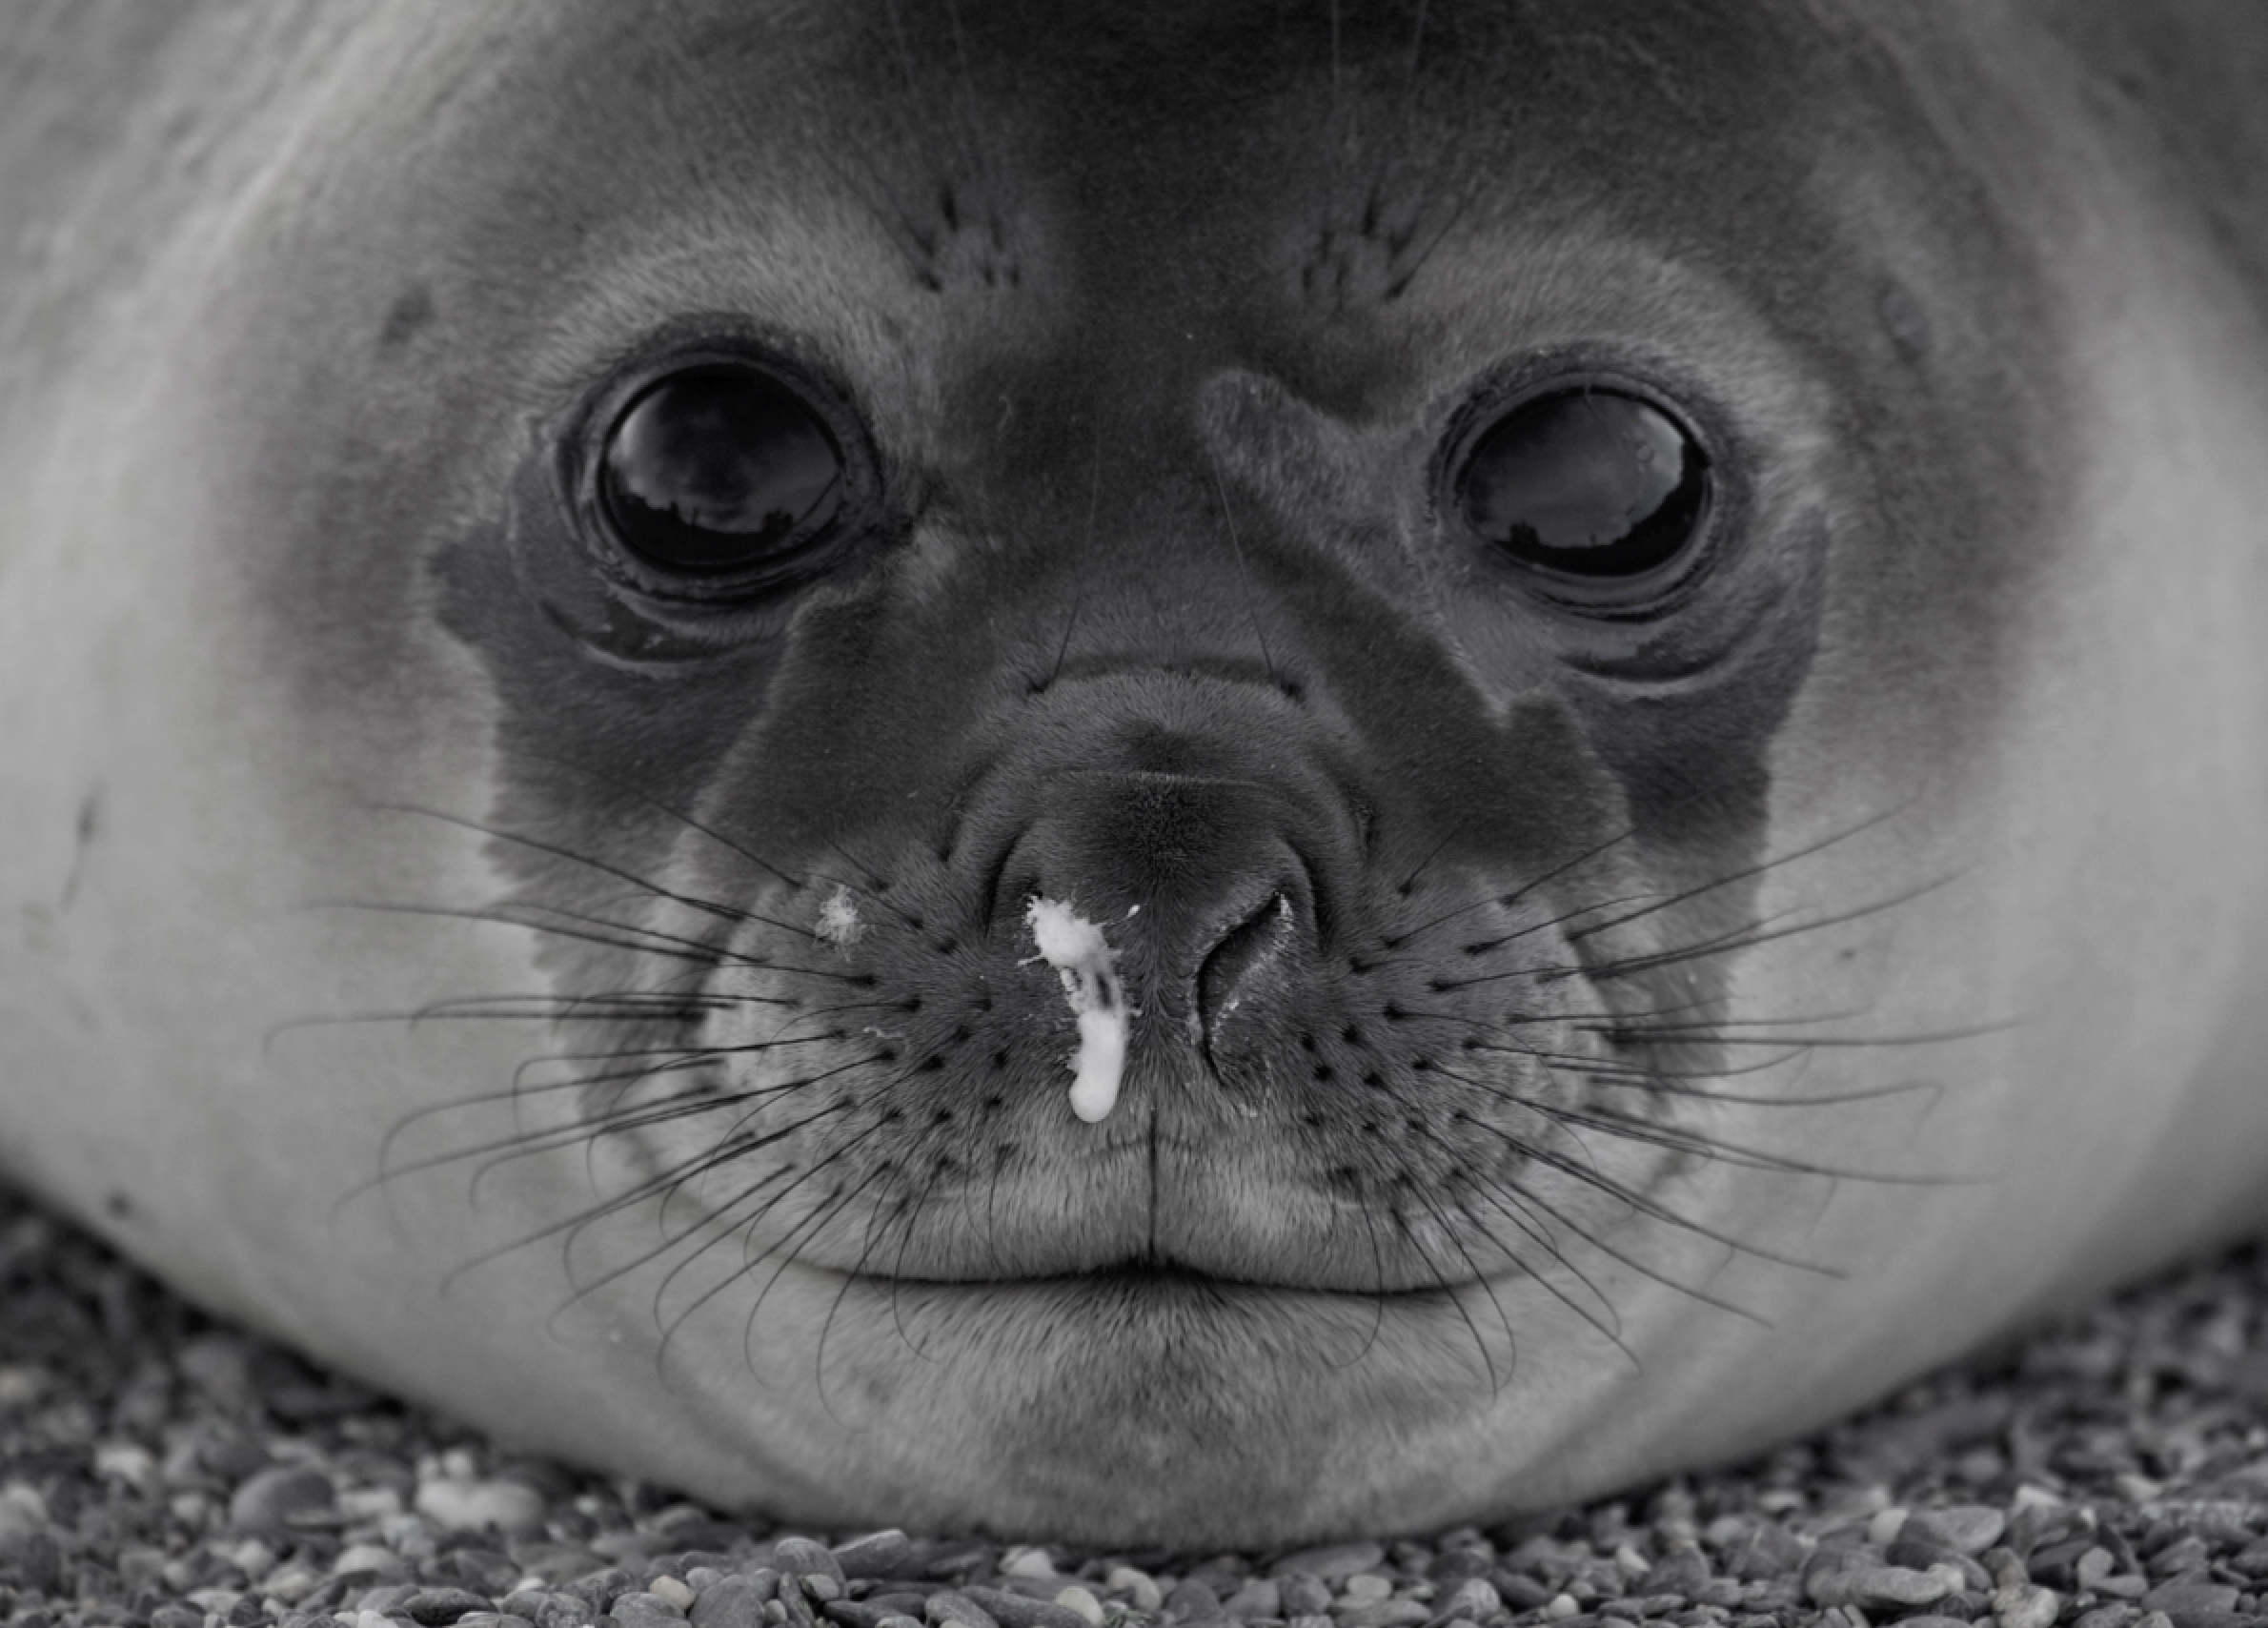 A seal peers into the camera, its face nearly symmetrical but for one noticeable difference that captures the viewer's attention.